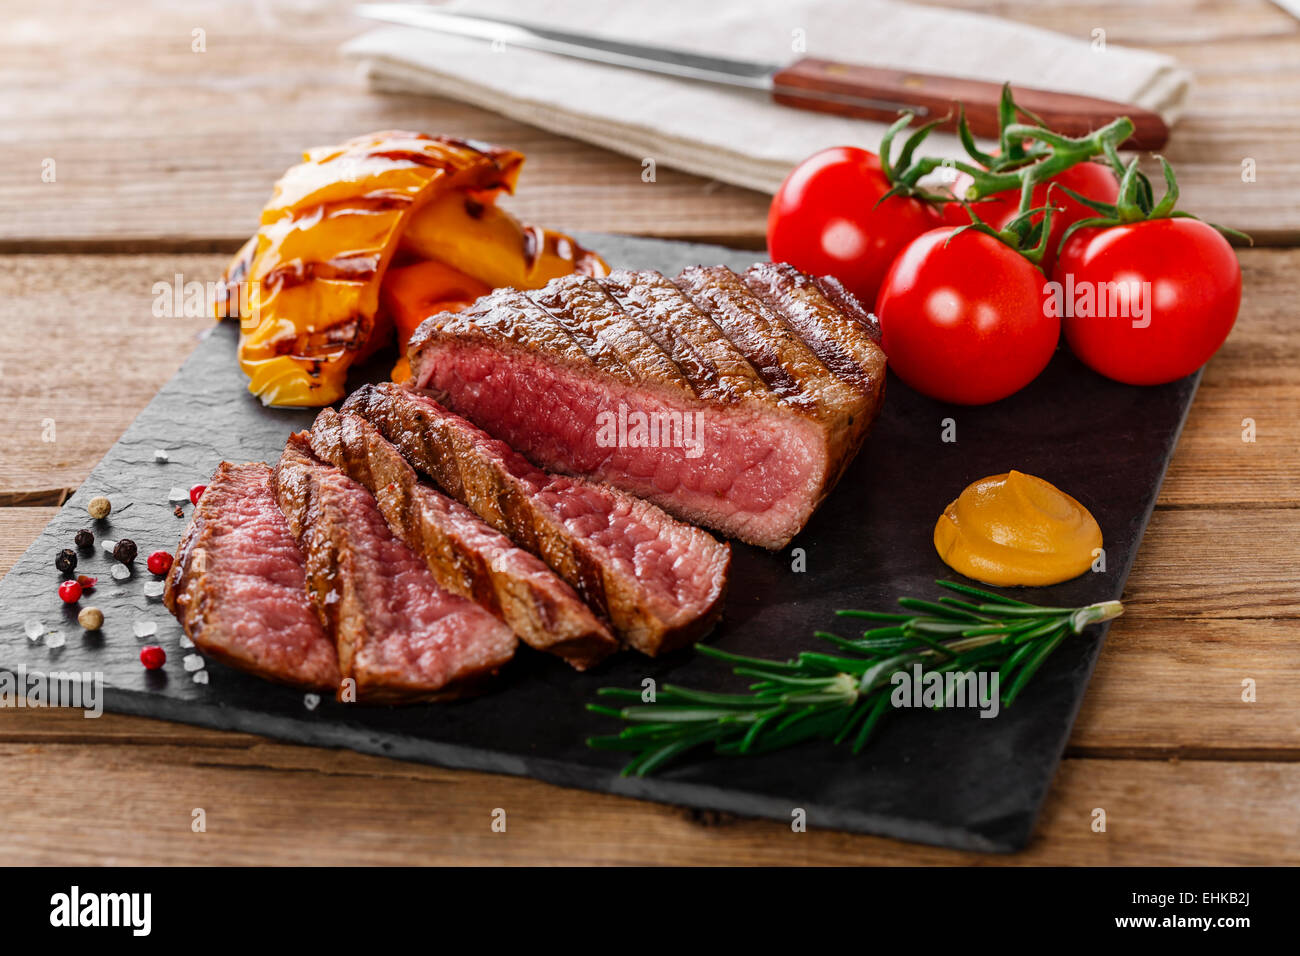 grilled beef steak rare sliced with vegetables - Stock Image